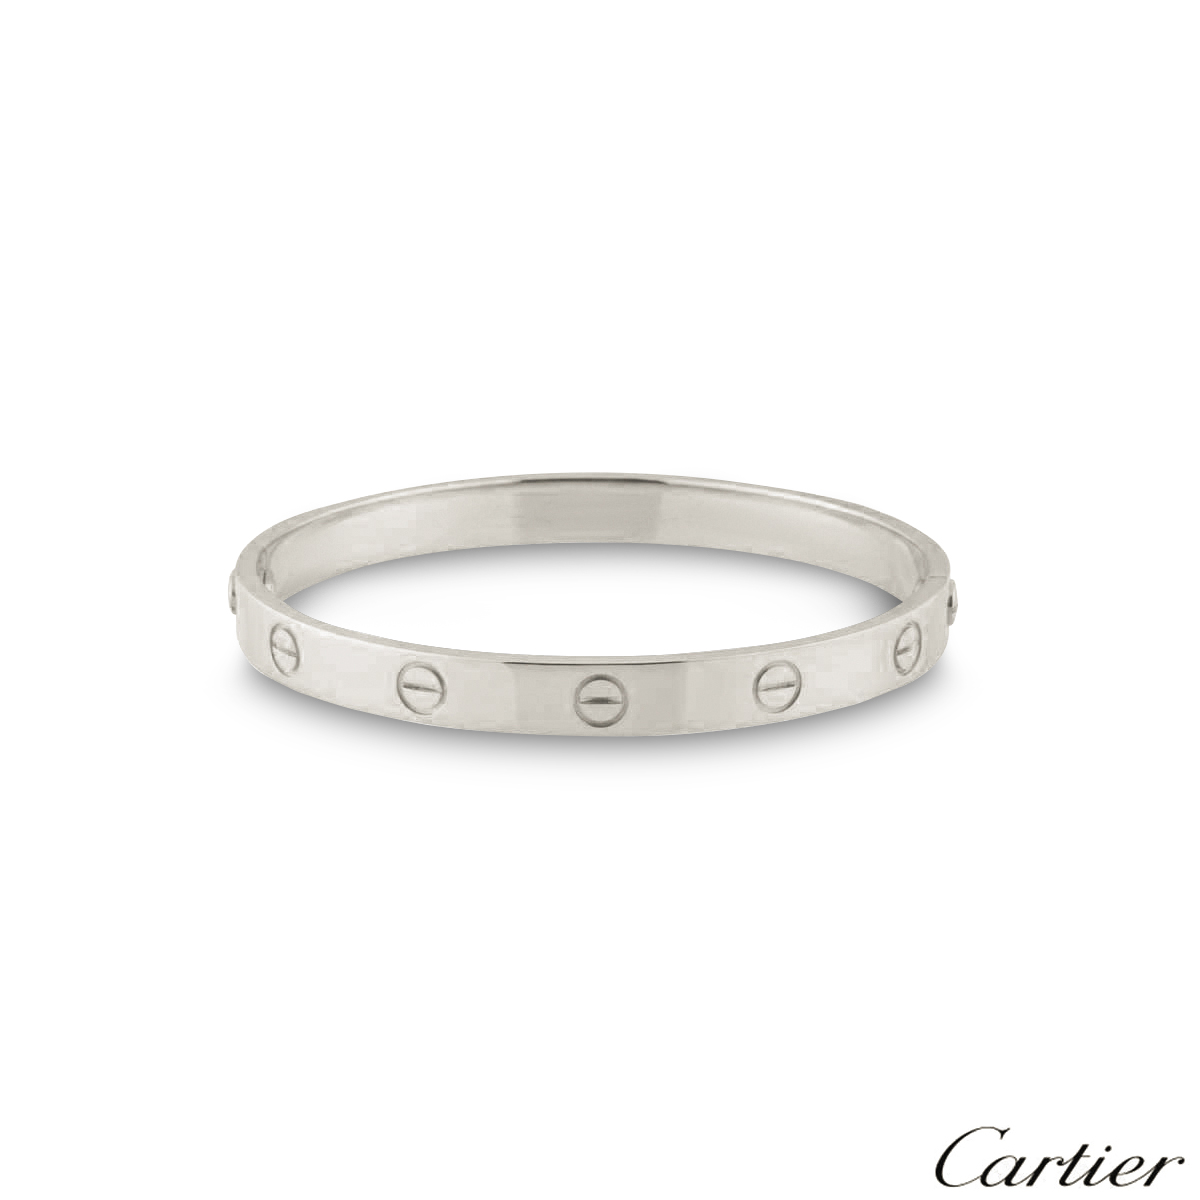 Cartier Platinum: Cartier Platinum Plain Love Bracelet Size 18 B6035718